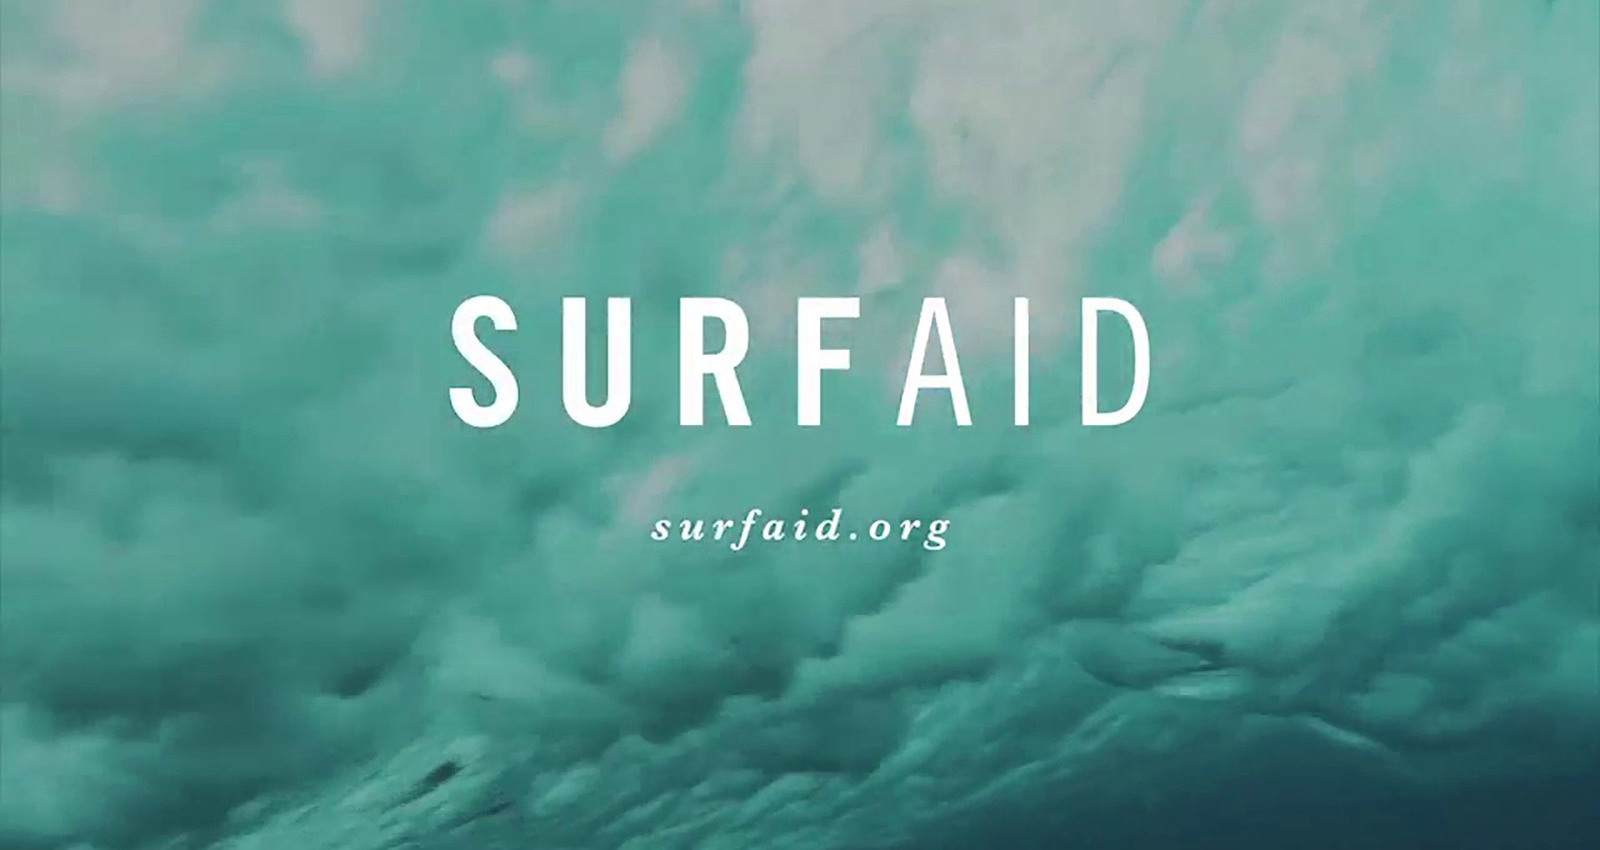 Surfify